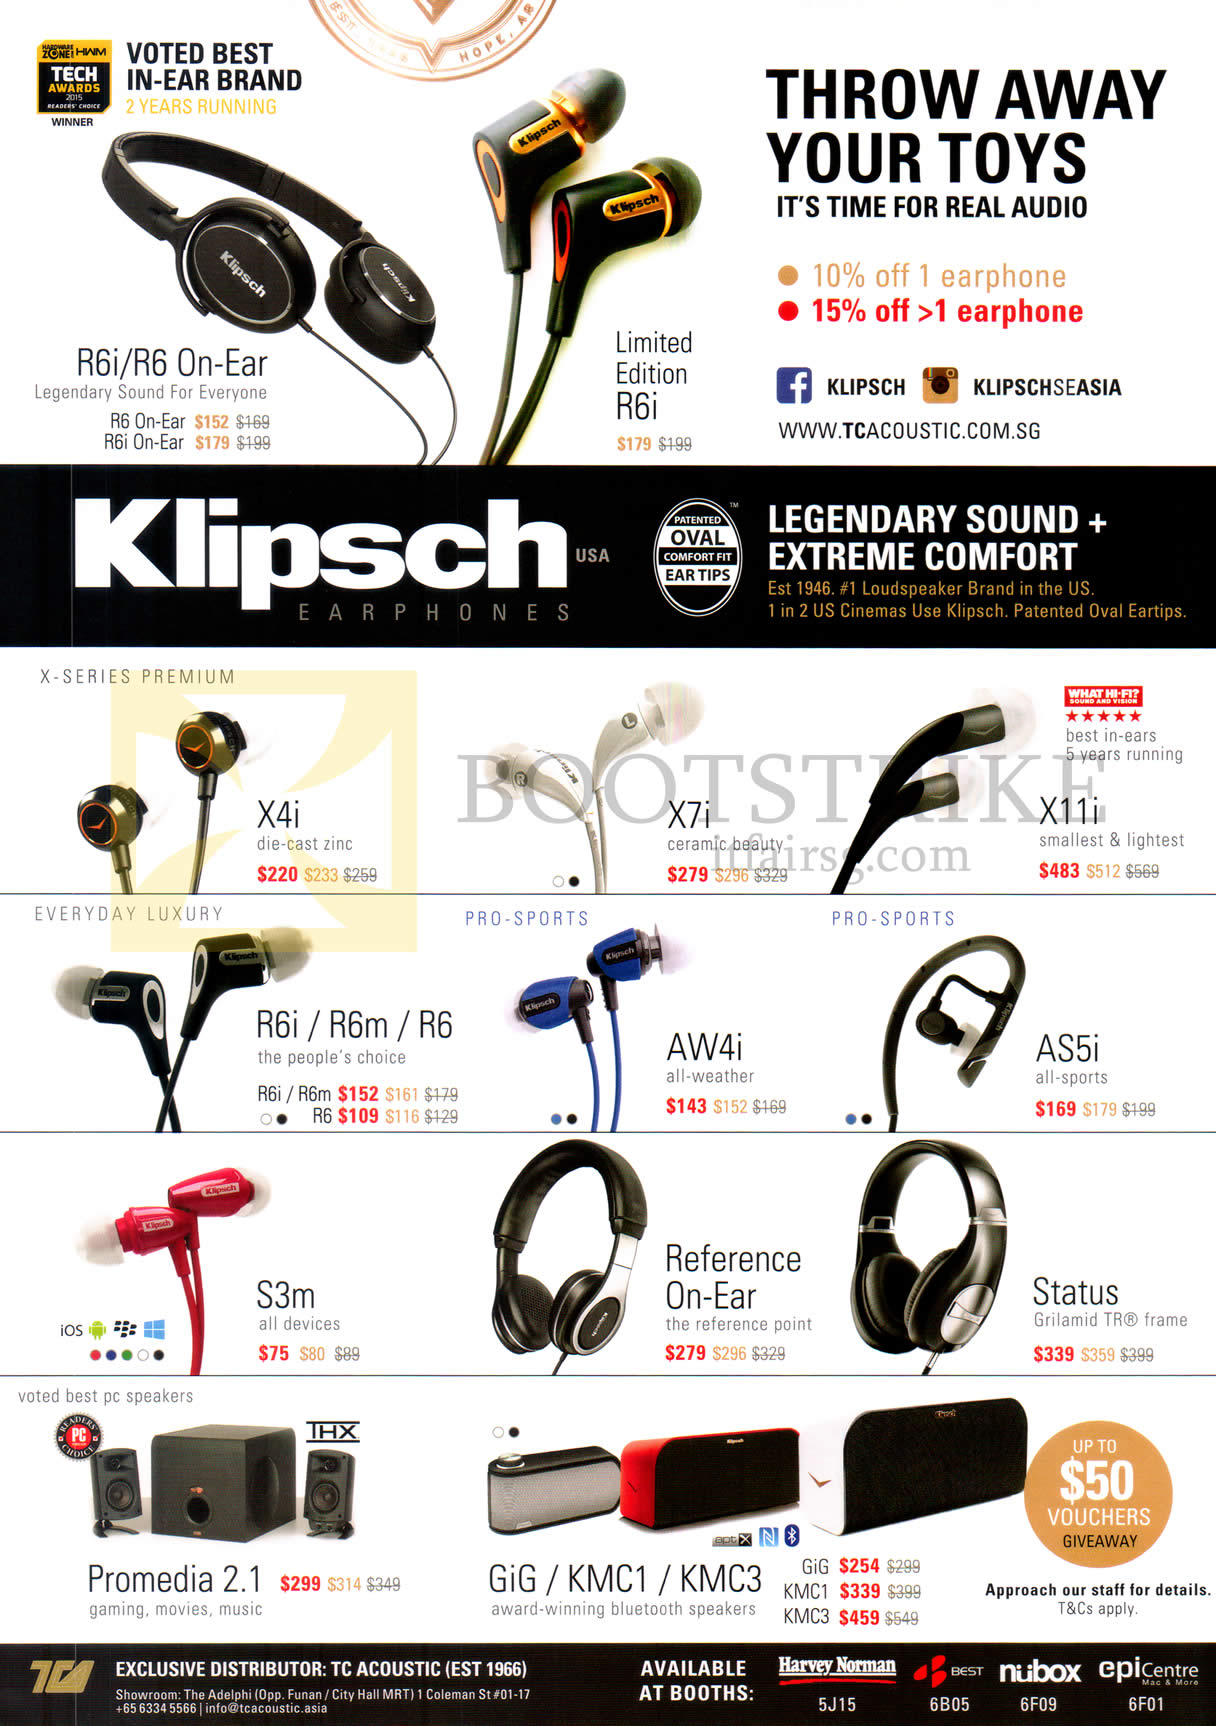 SITEX 2015 price list image brochure of Klipsch Earphones, Headphones, Bluetooth Speakers, R6i, R6 On-Ear, X4i, X7i, X11i, R6i, R6m, R6, AW4i, X11i, AS5i, S3m, Reference-ON-Ear, Status, Promedia 2.1, Gig, KMC1, KMC3